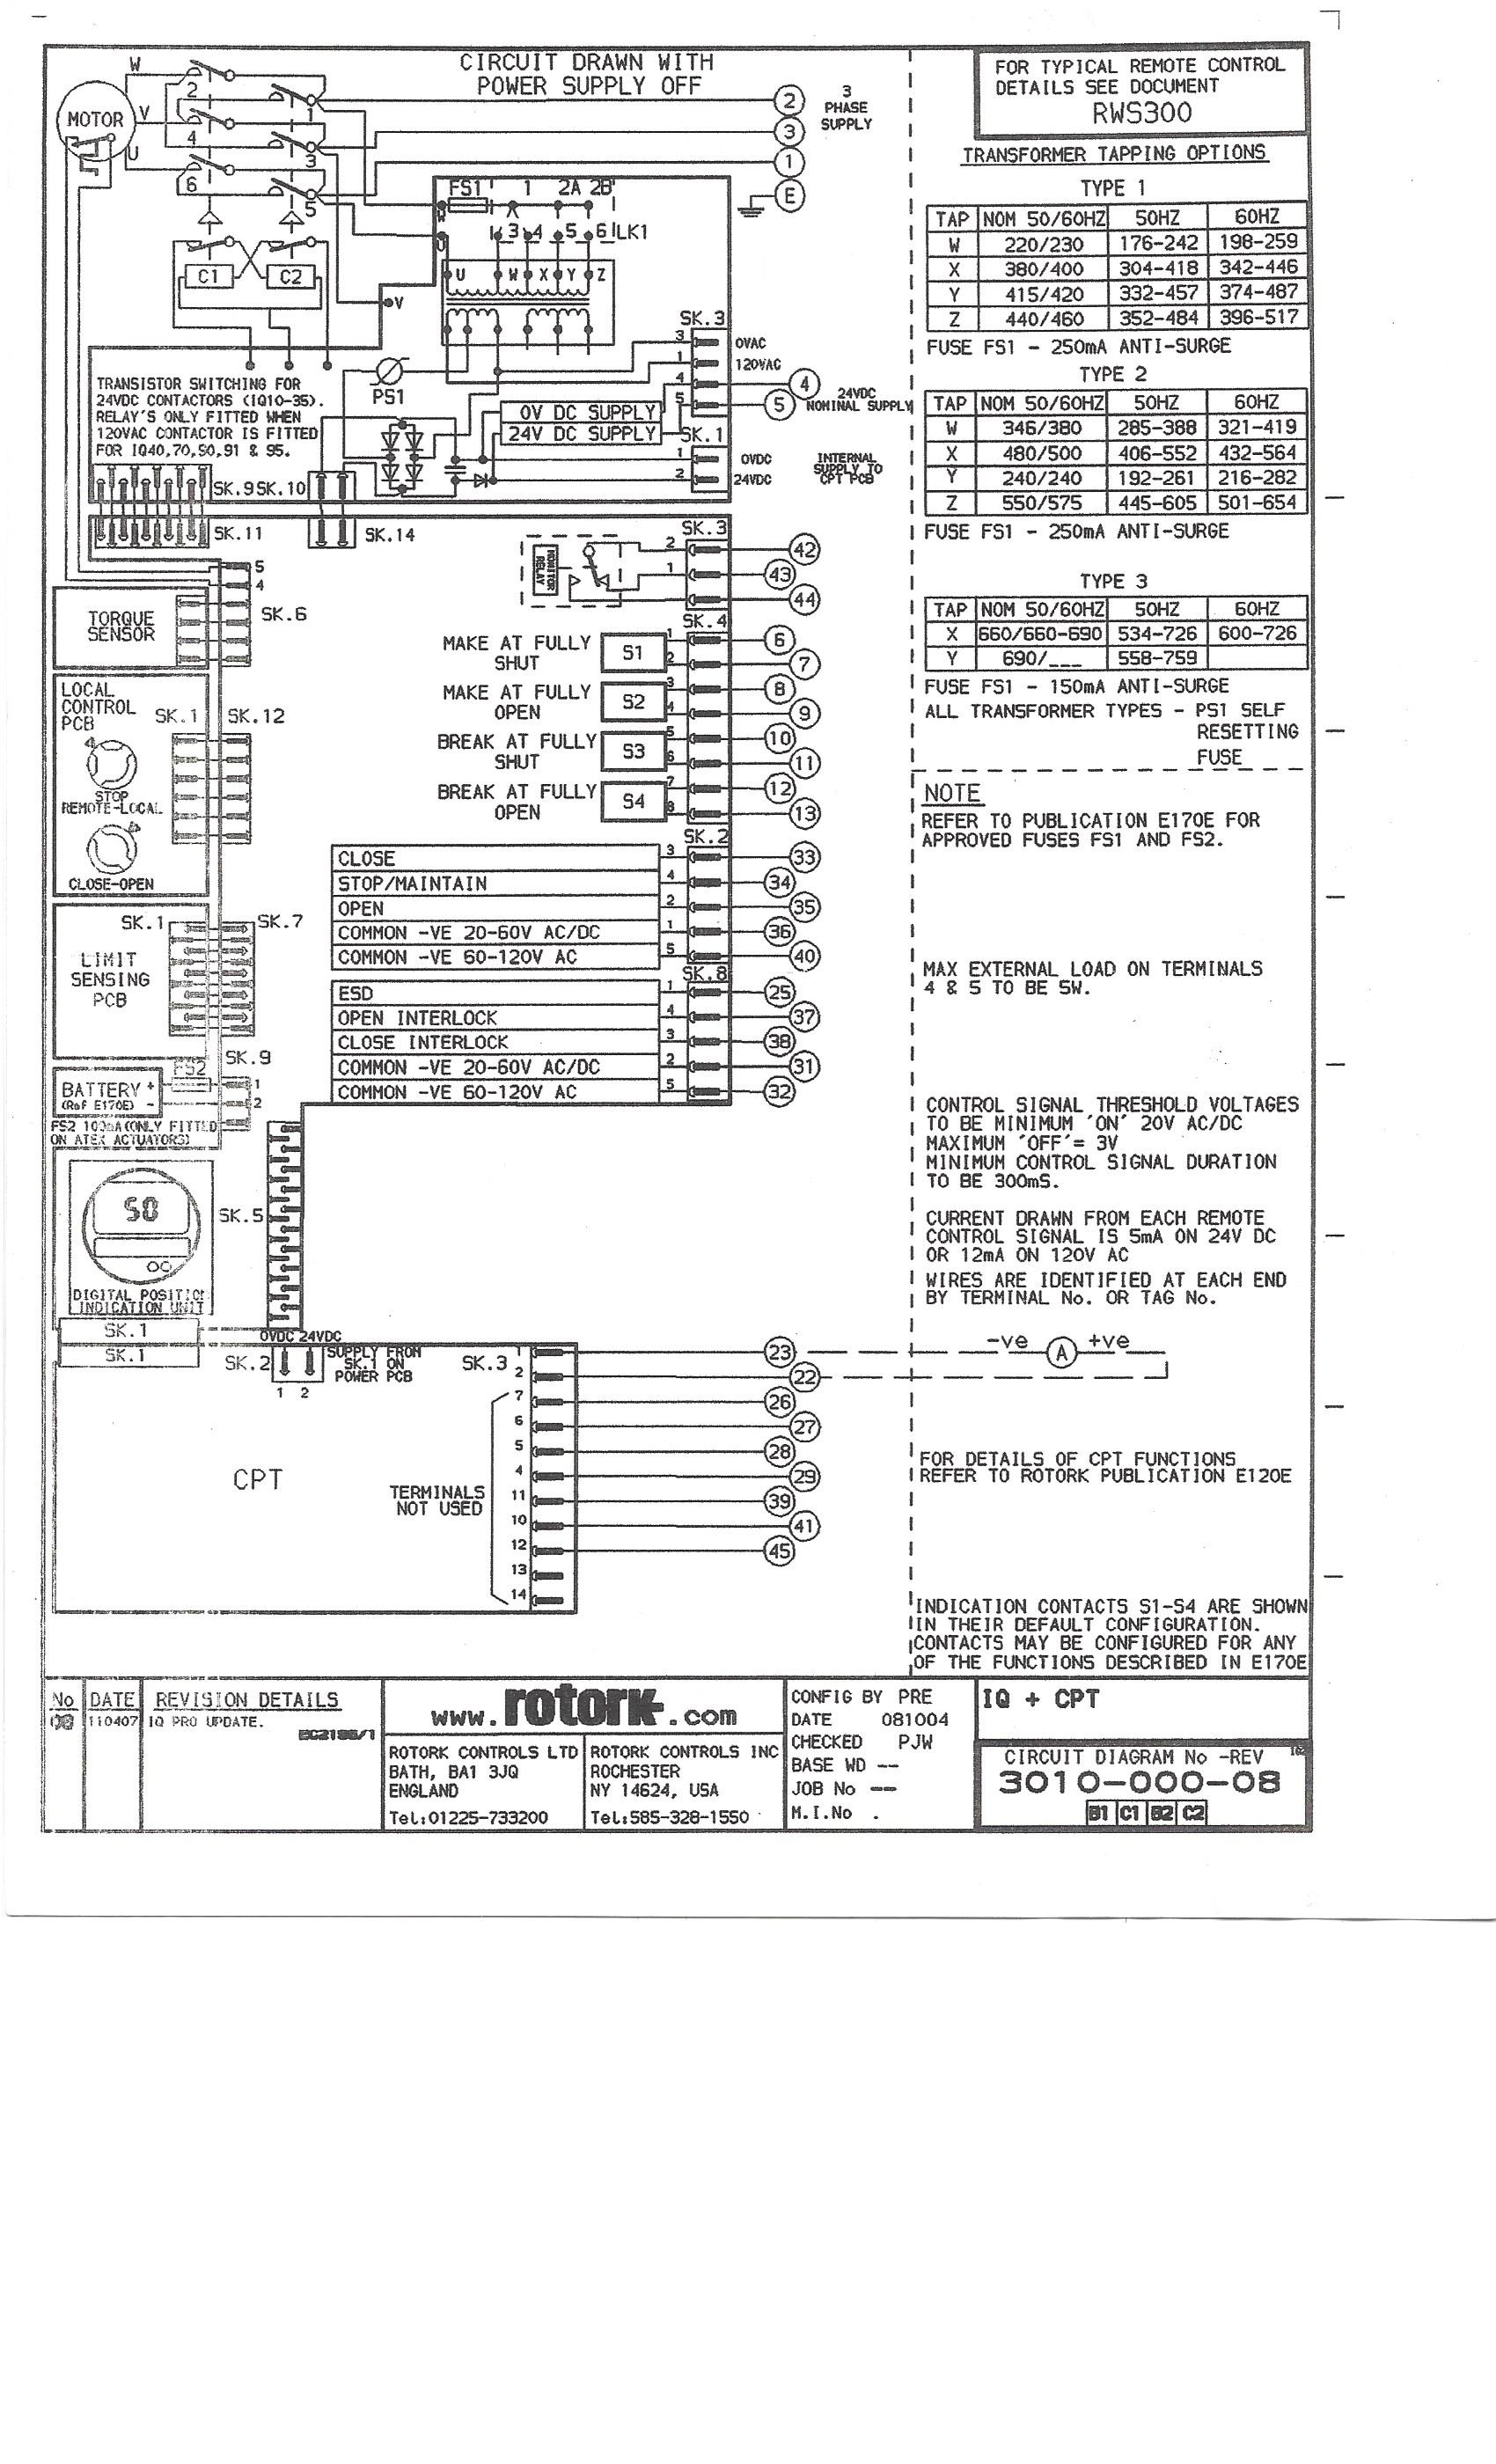 mov wiring diagram wiring diagrams schematics rh myomedia co rotork wiring diagram 2240 rotork wiring diagram 6000